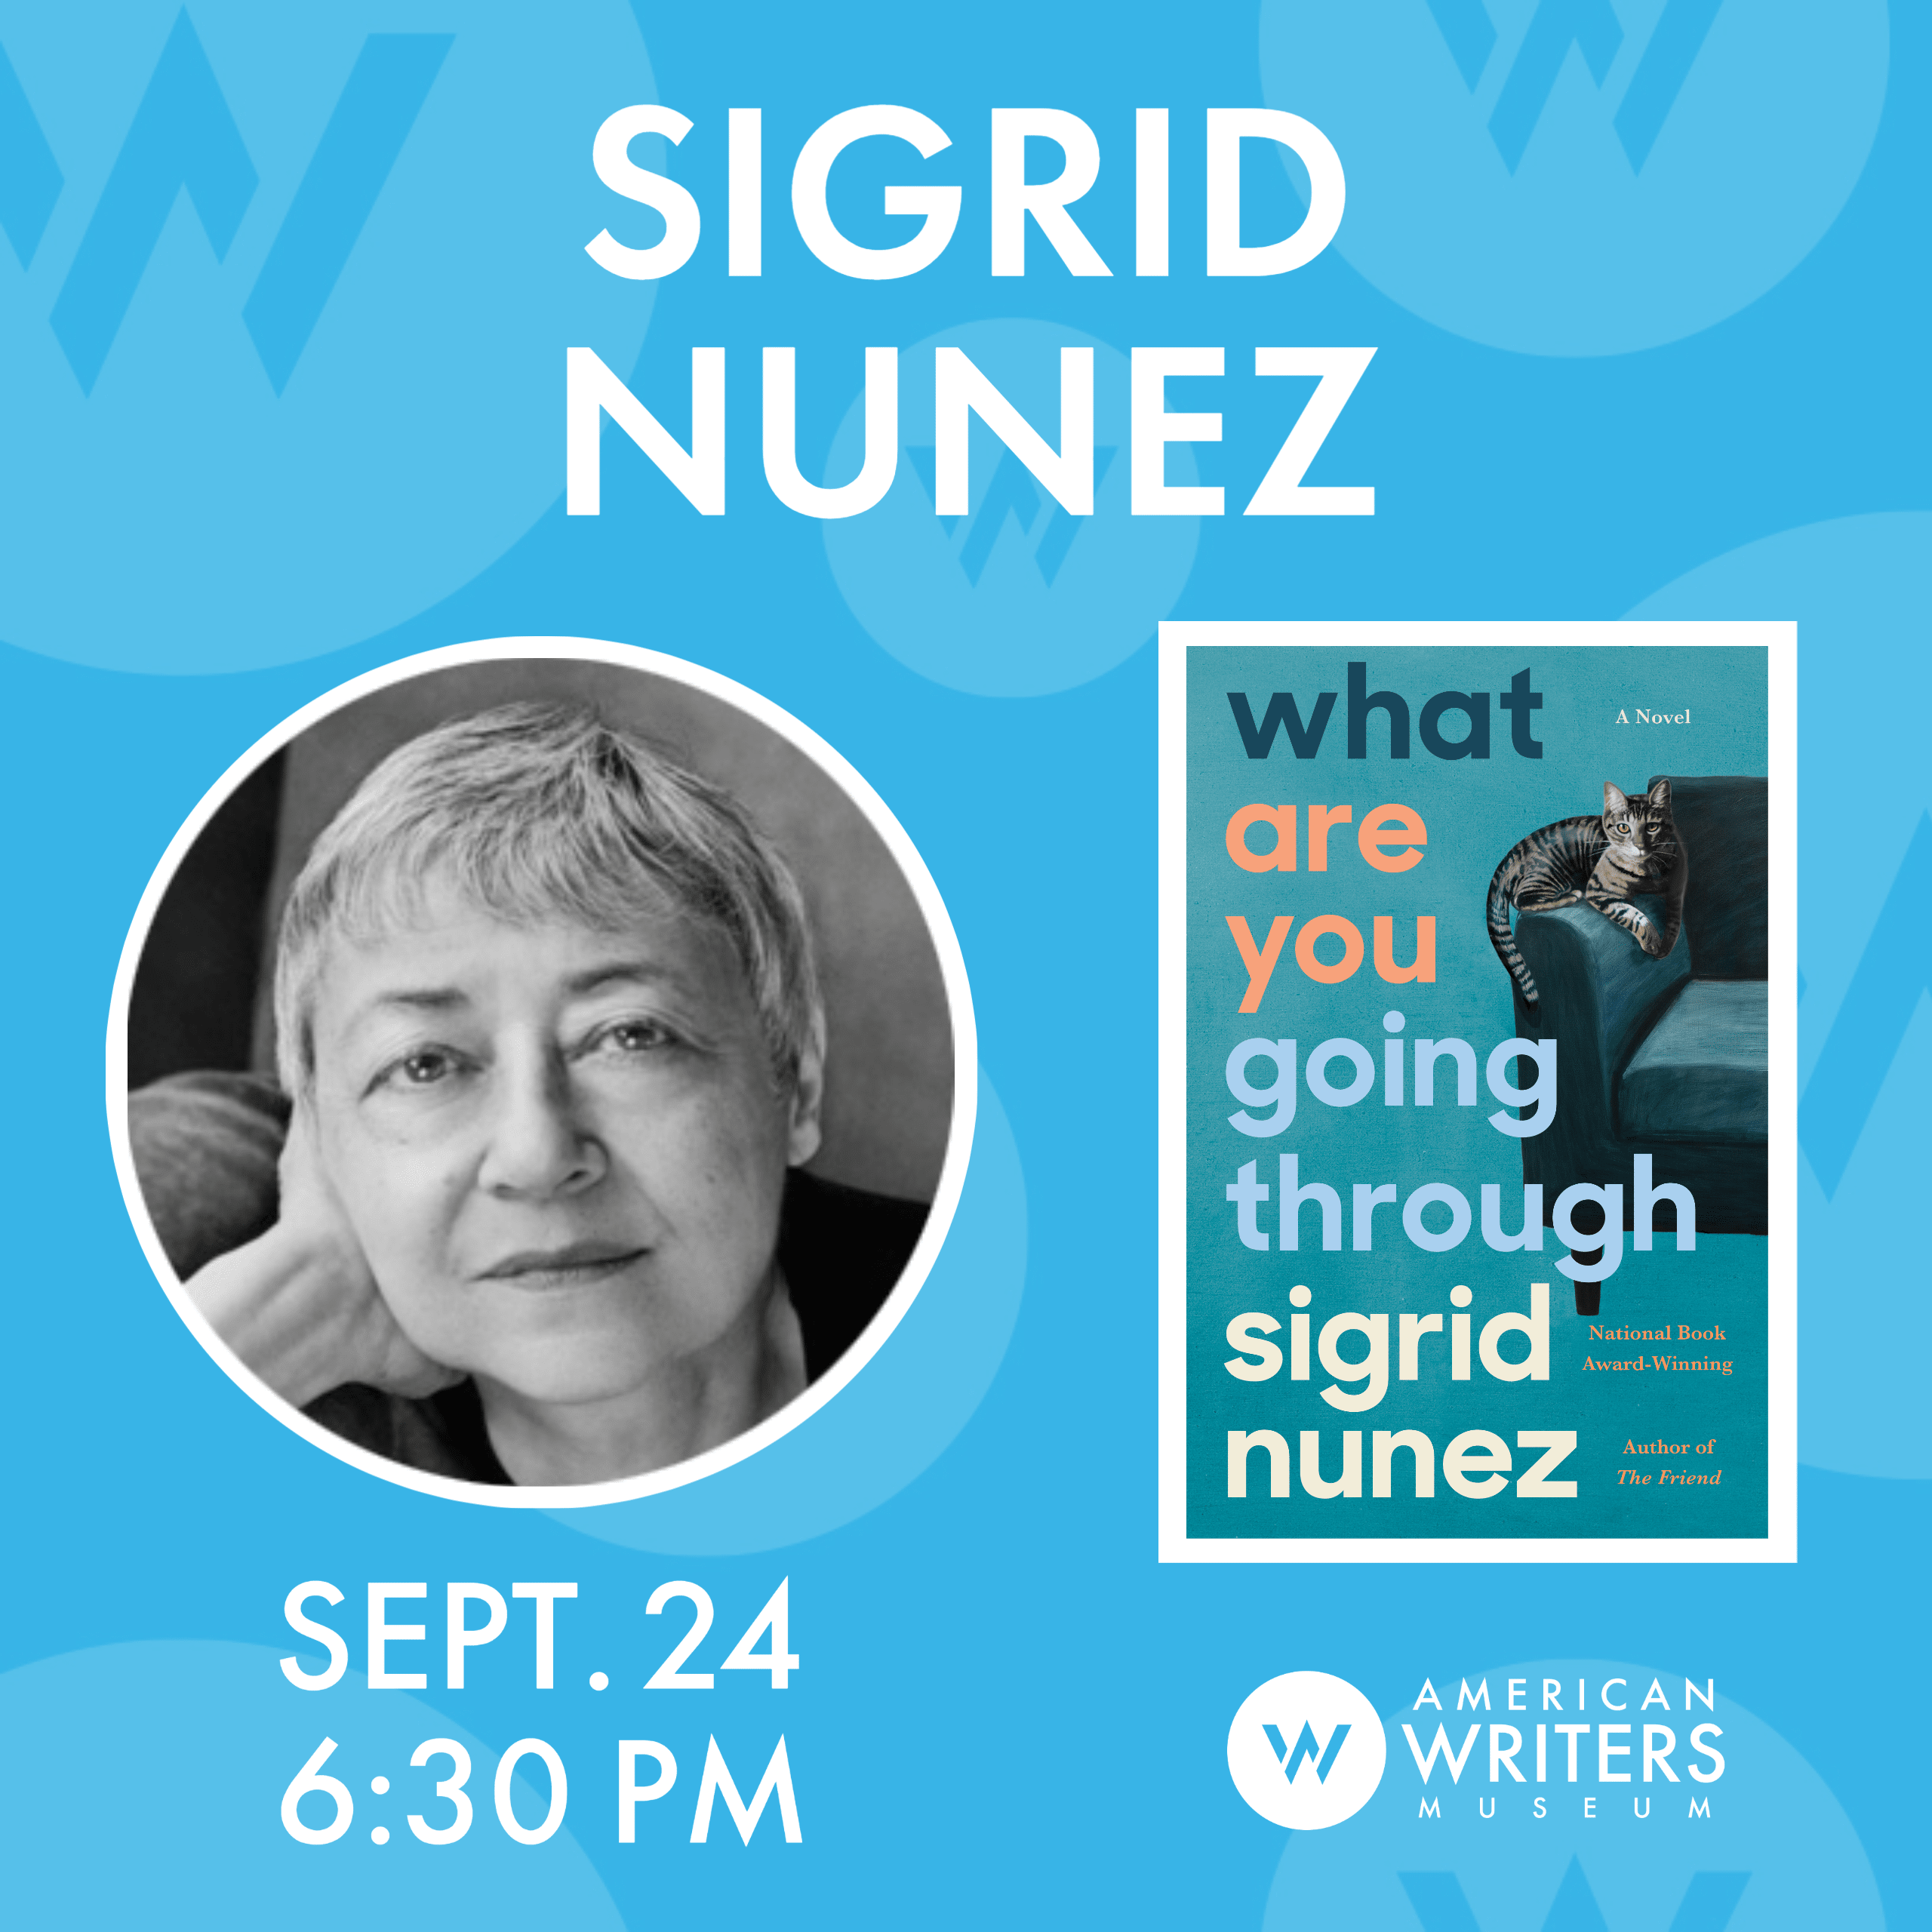 American Writers Museum presents a conversation with Sigrid Nunez about her new book What Are You Going Through on September 24 at 6:30 pm Central